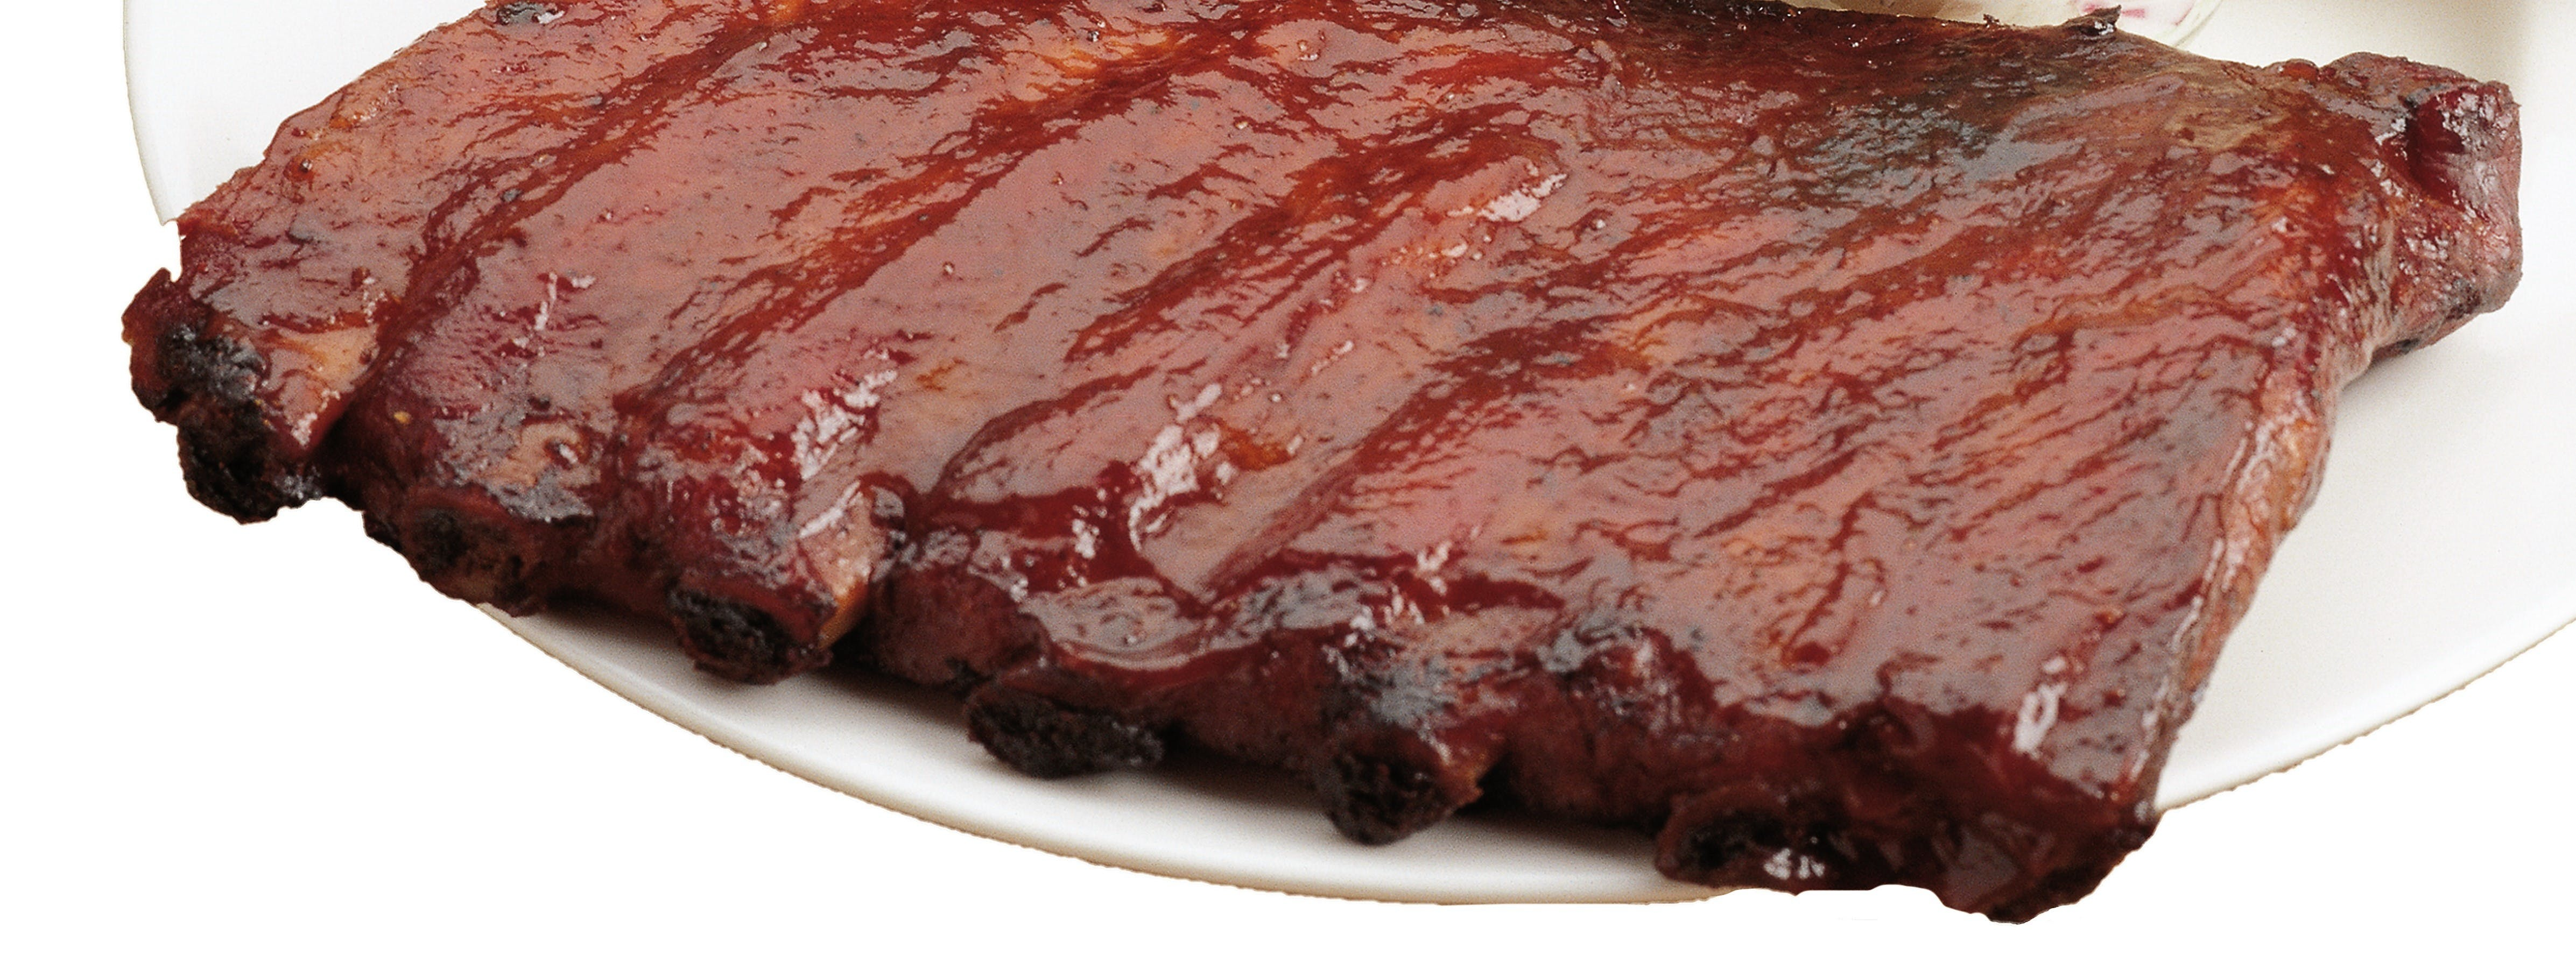 Ribs from Hog Wild Pit BBQ & Catering in Lawrence, KS